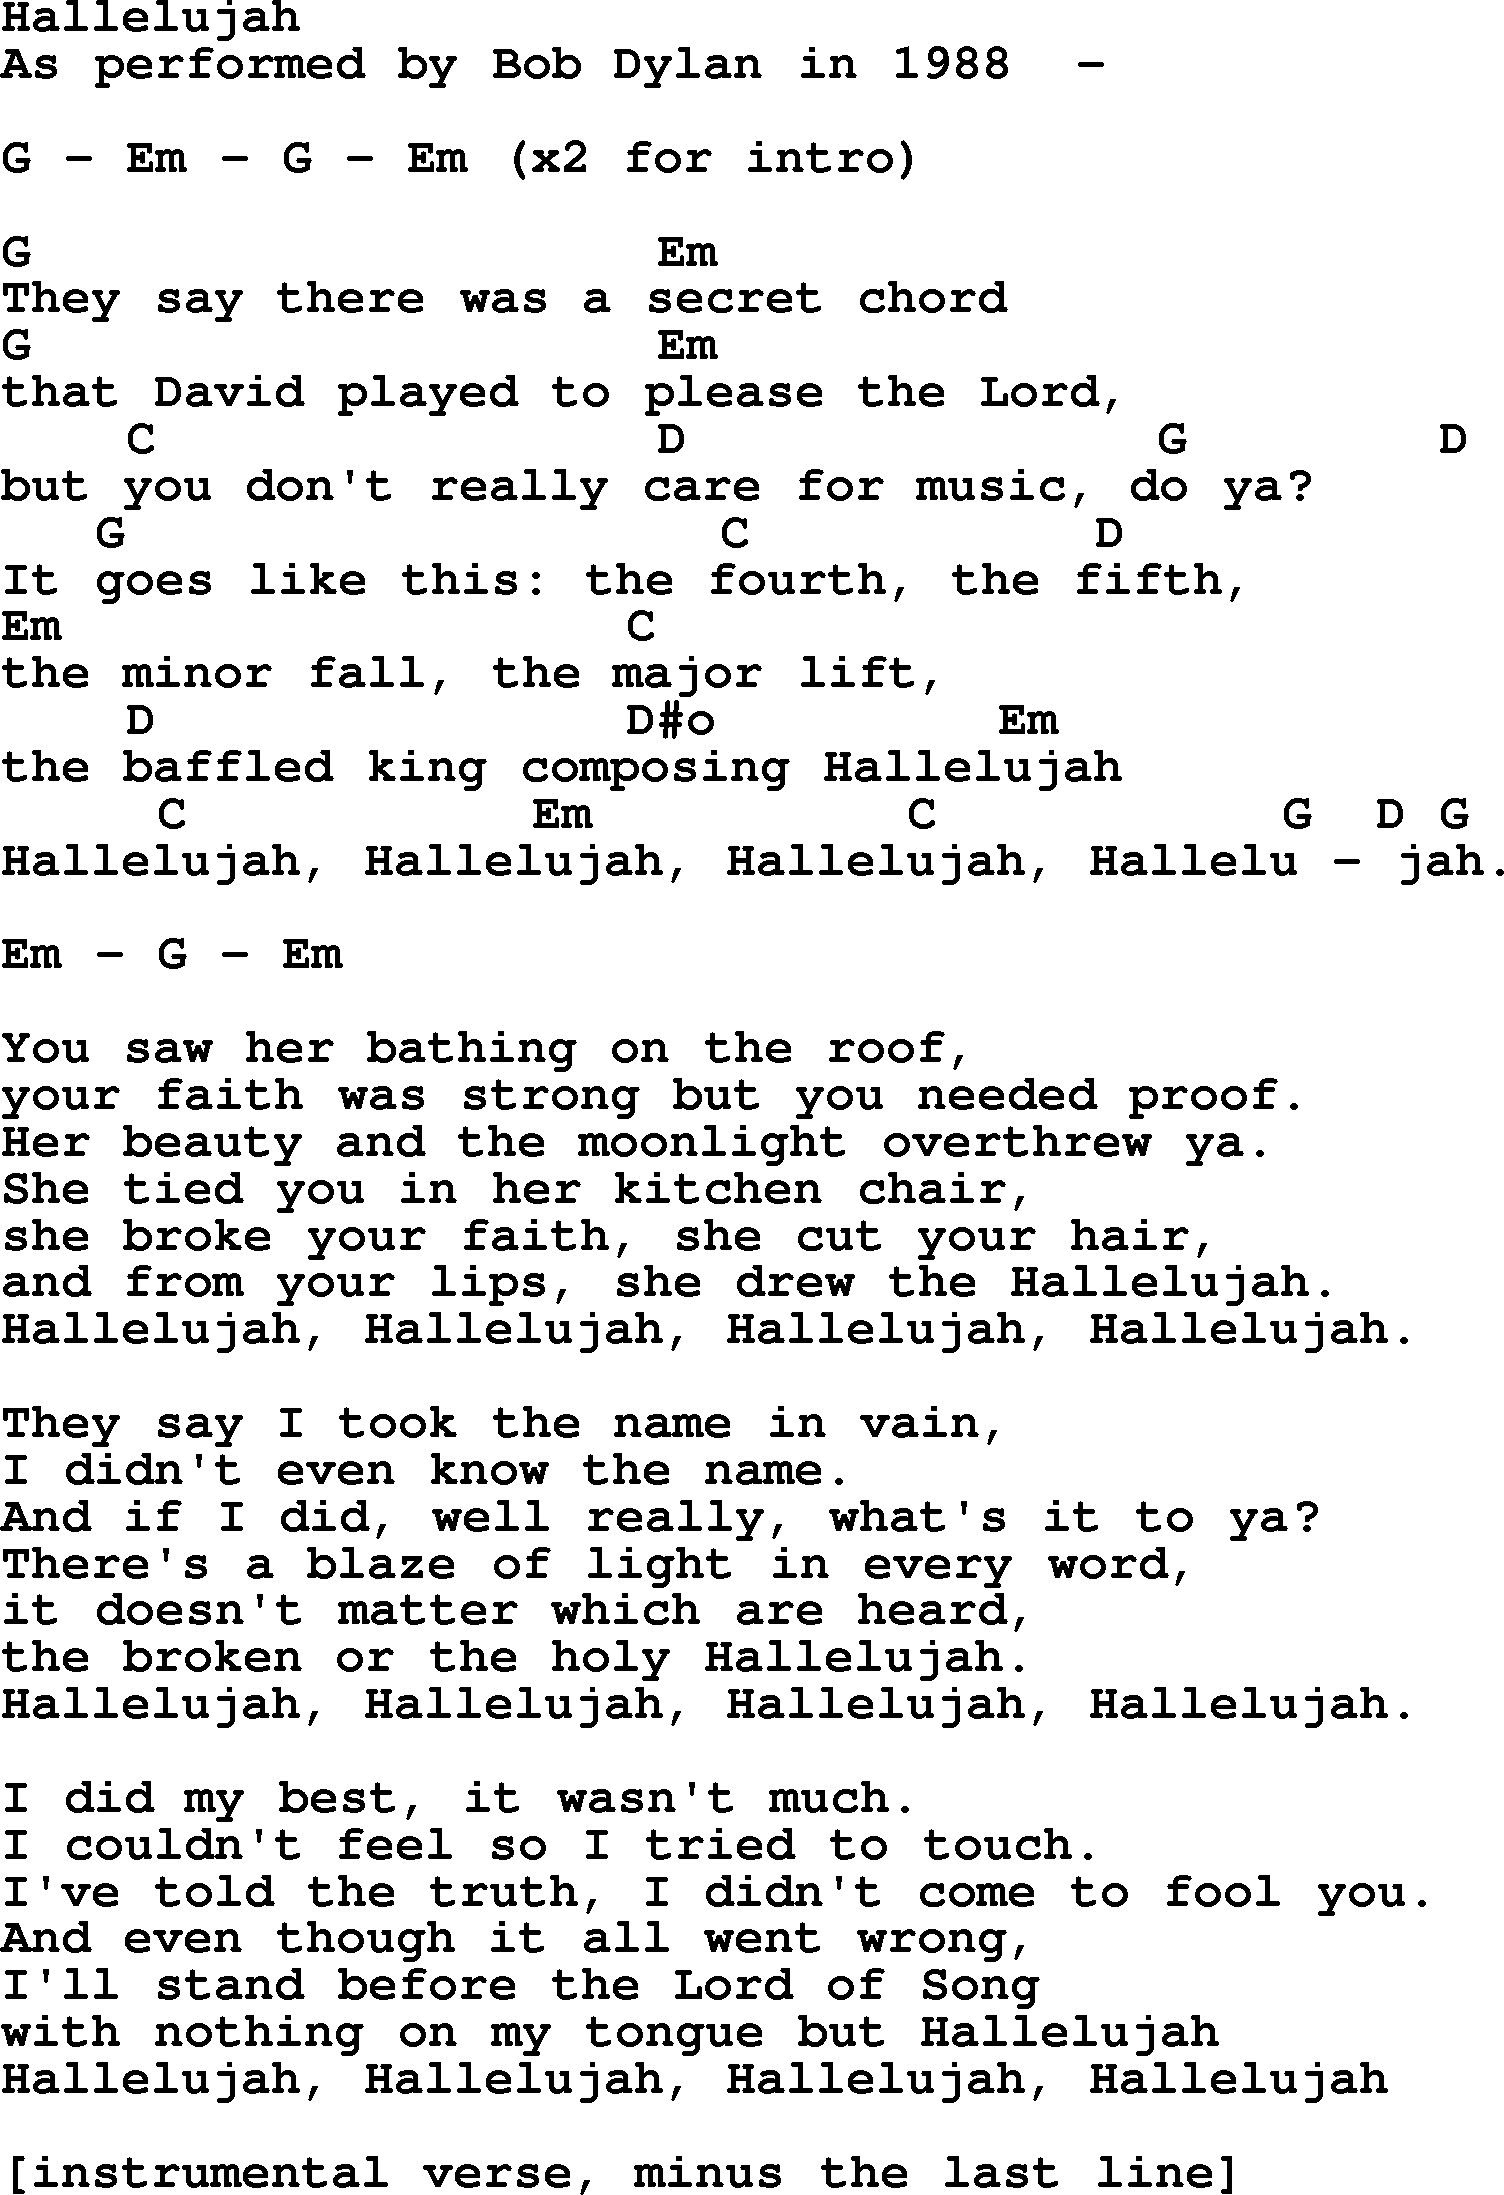 Bob dylan song hallelujah lyrics and chords bob dylan song lyrics with chords hallelujah hexwebz Images